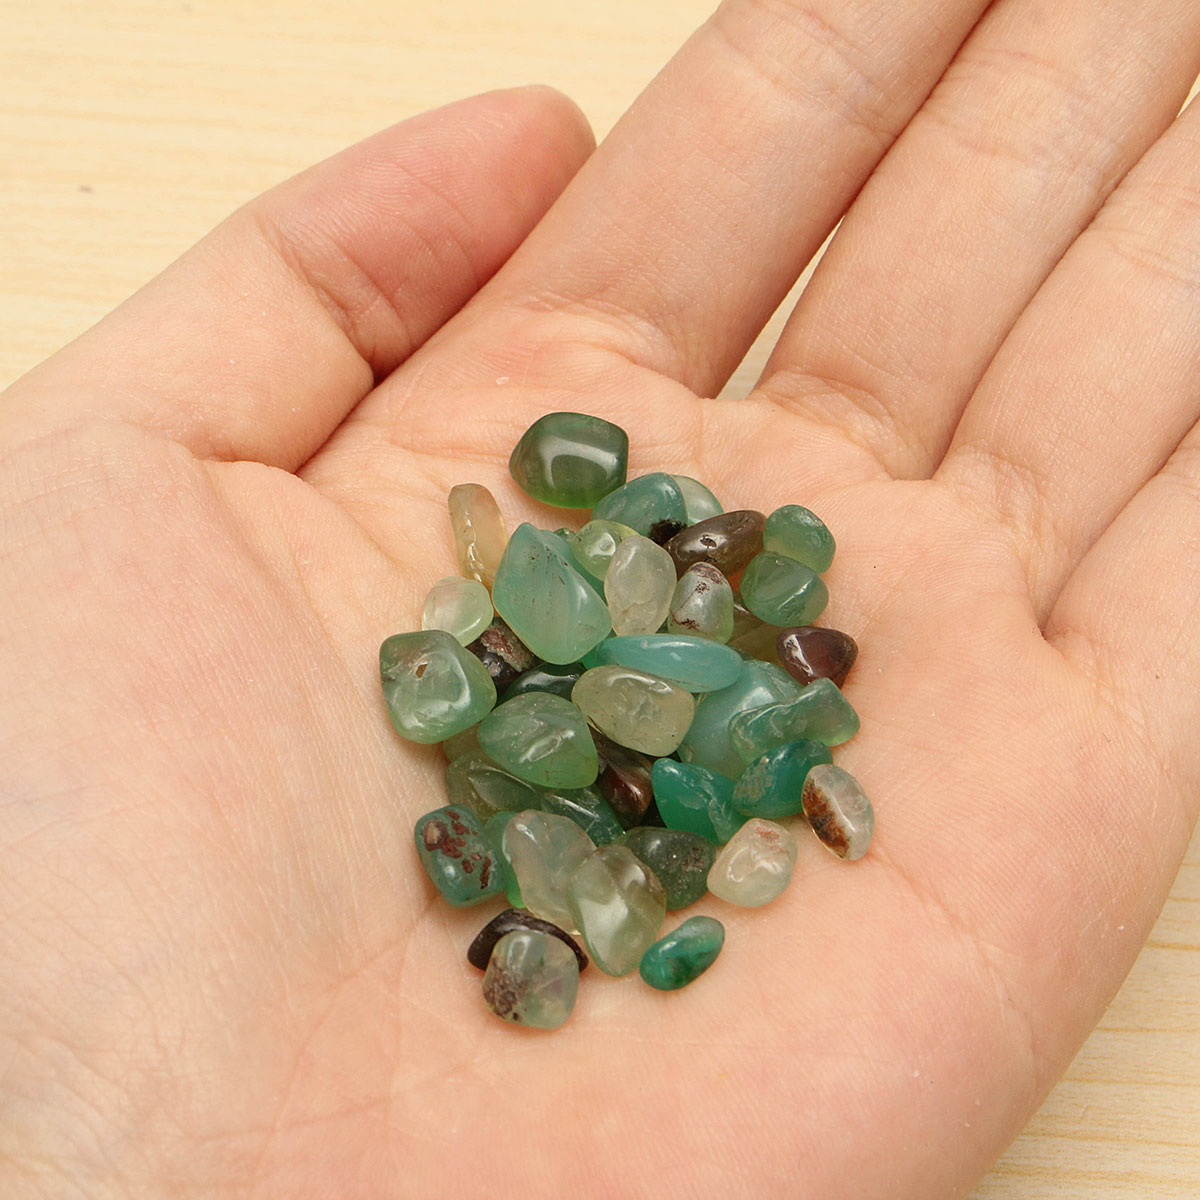 50g Jade Gravel Crystal Stone Aquarium Decoration DIY Design Gifts Accessories